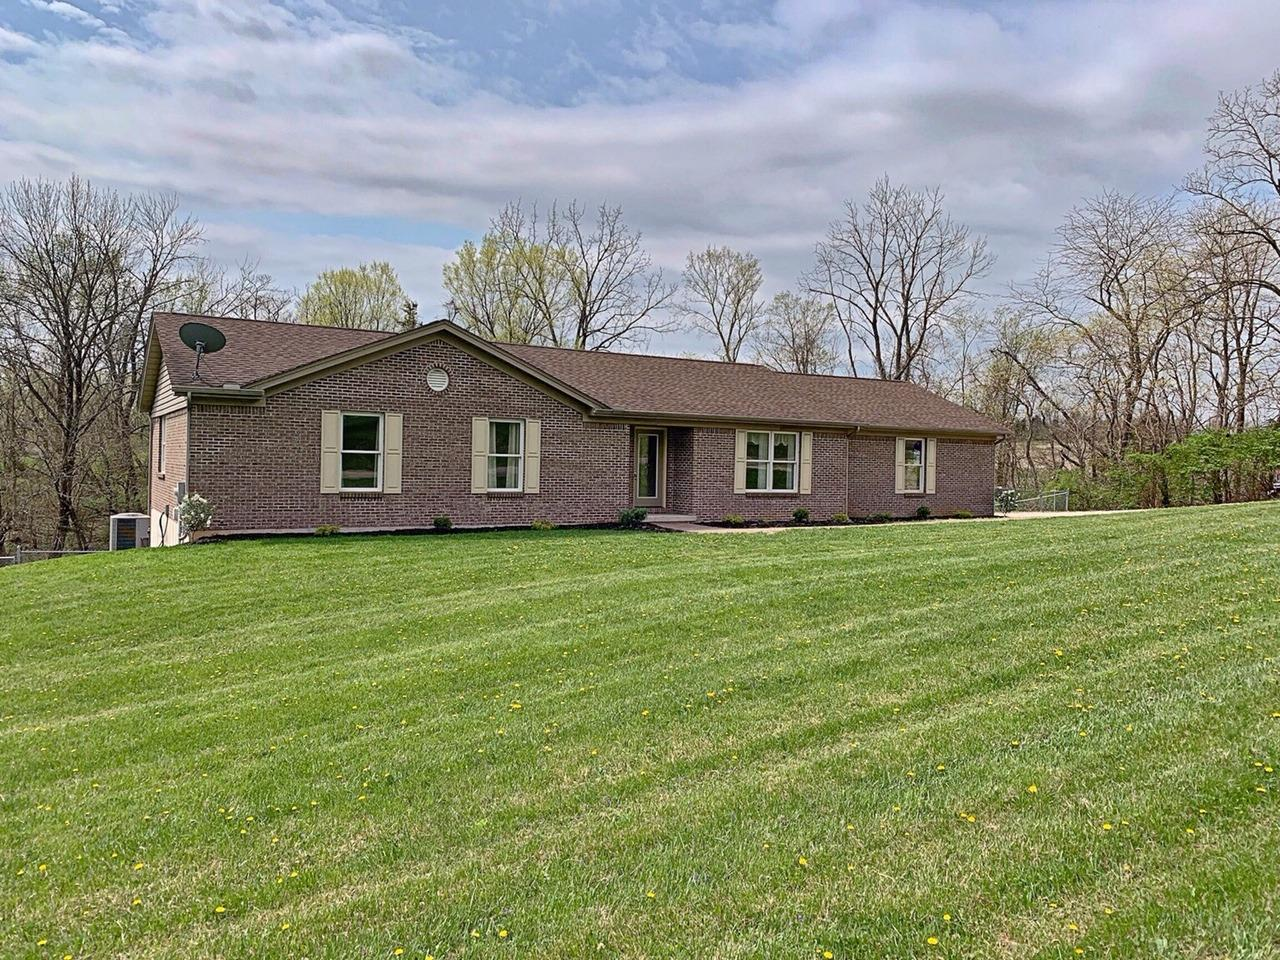 Photo 2 for 10333 North Dearborn Rd New Alsace, IN 47041